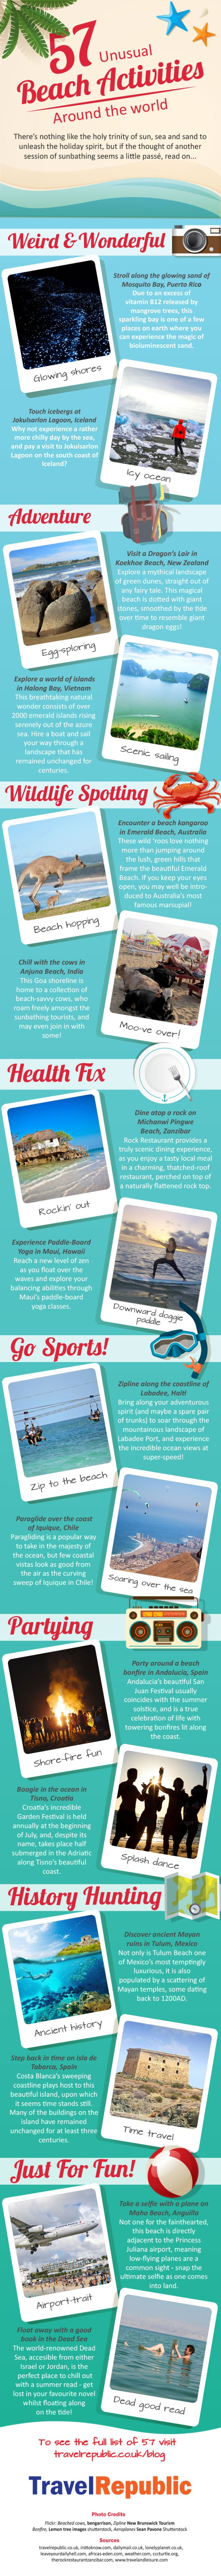 57 Unusual Beach Activities Around the World - An Infographic from The TravelRepublic Blog